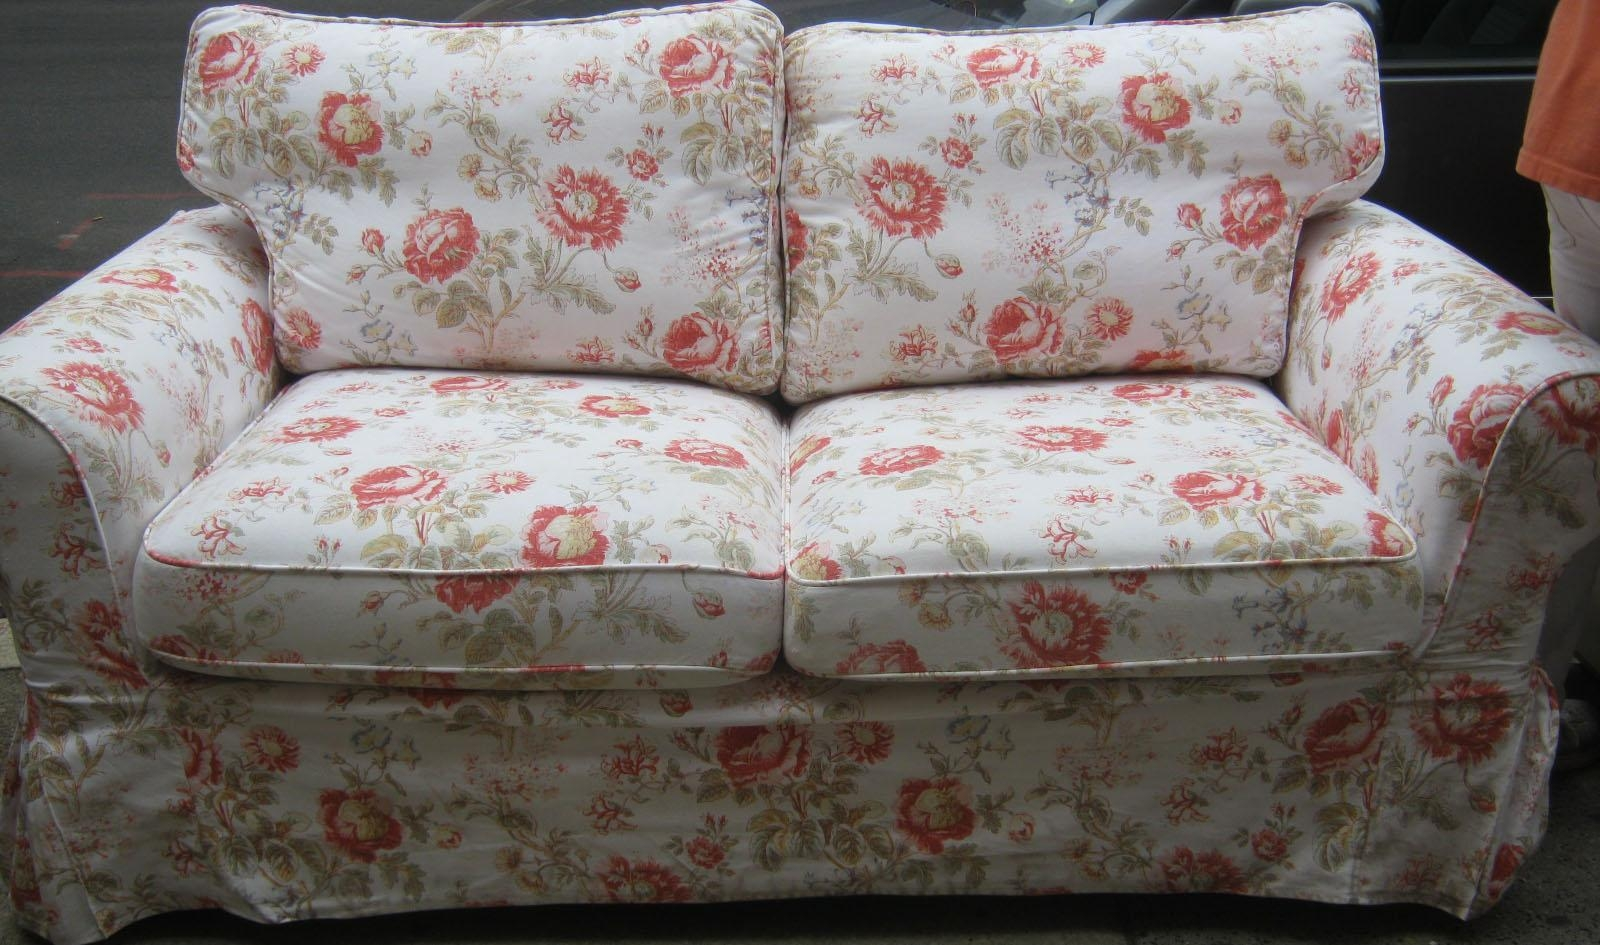 Brilliant Patterned Couch Slipcovers Advice On Ideas Intended For Patterned Sofa Slipcovers (View 6 of 20)